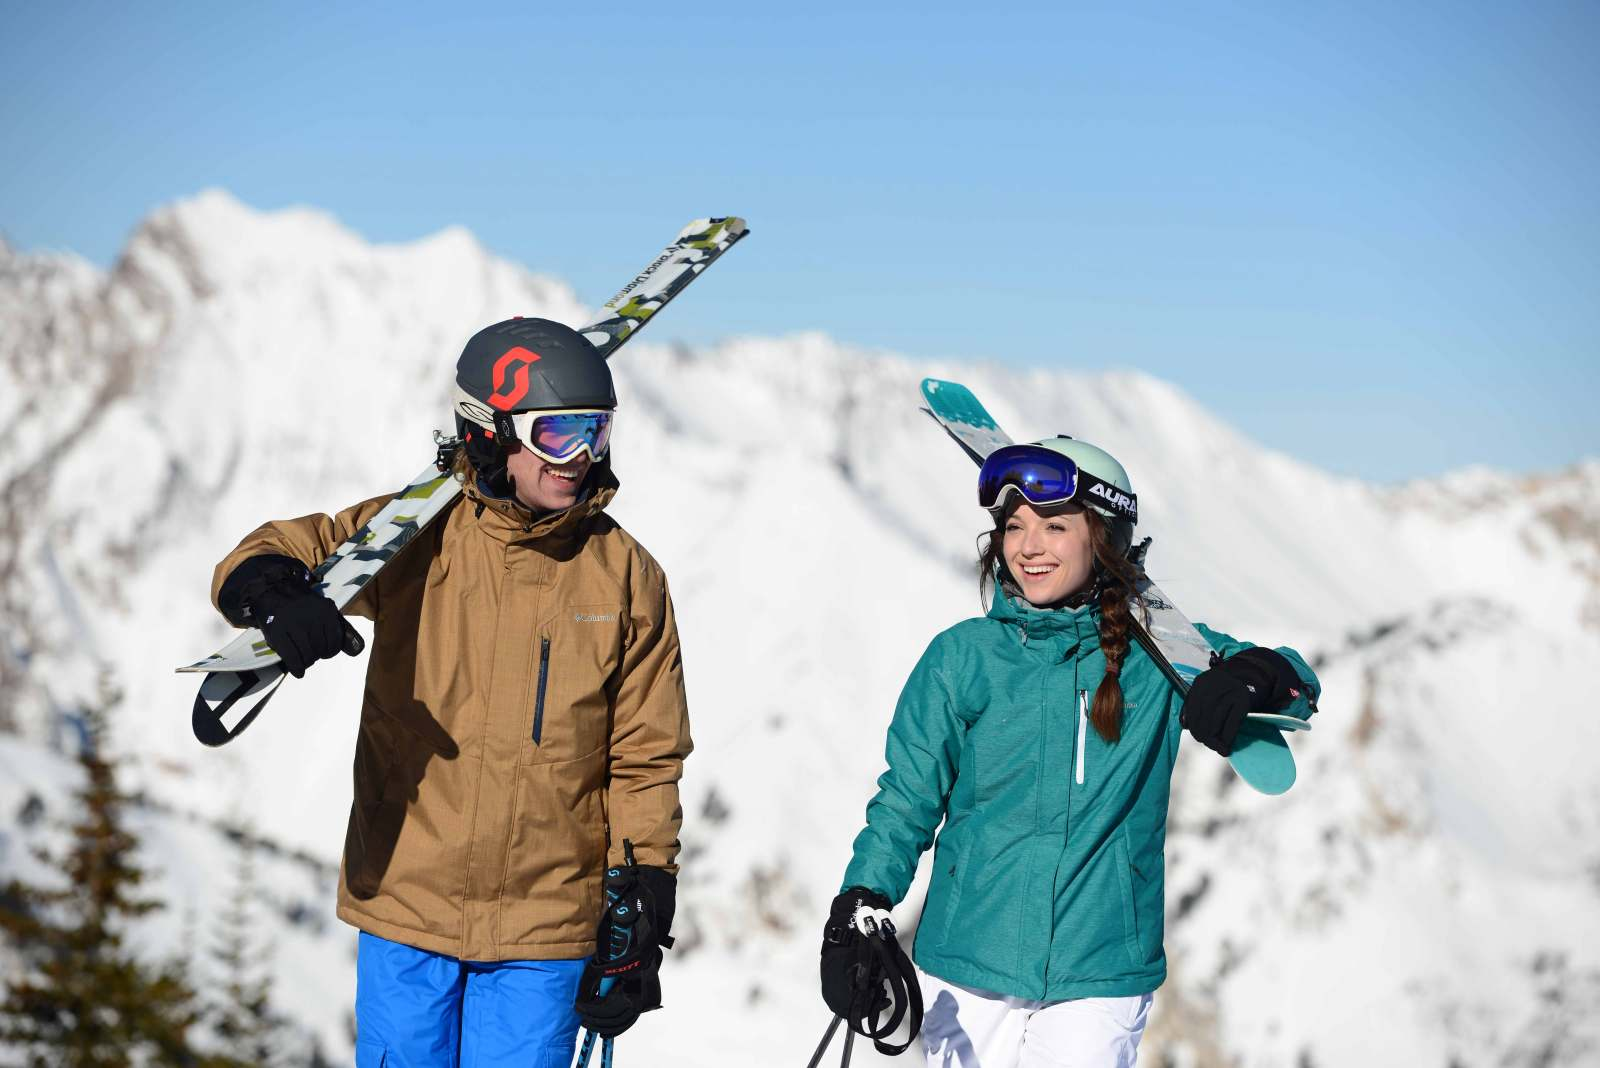 couple holding skis during winter